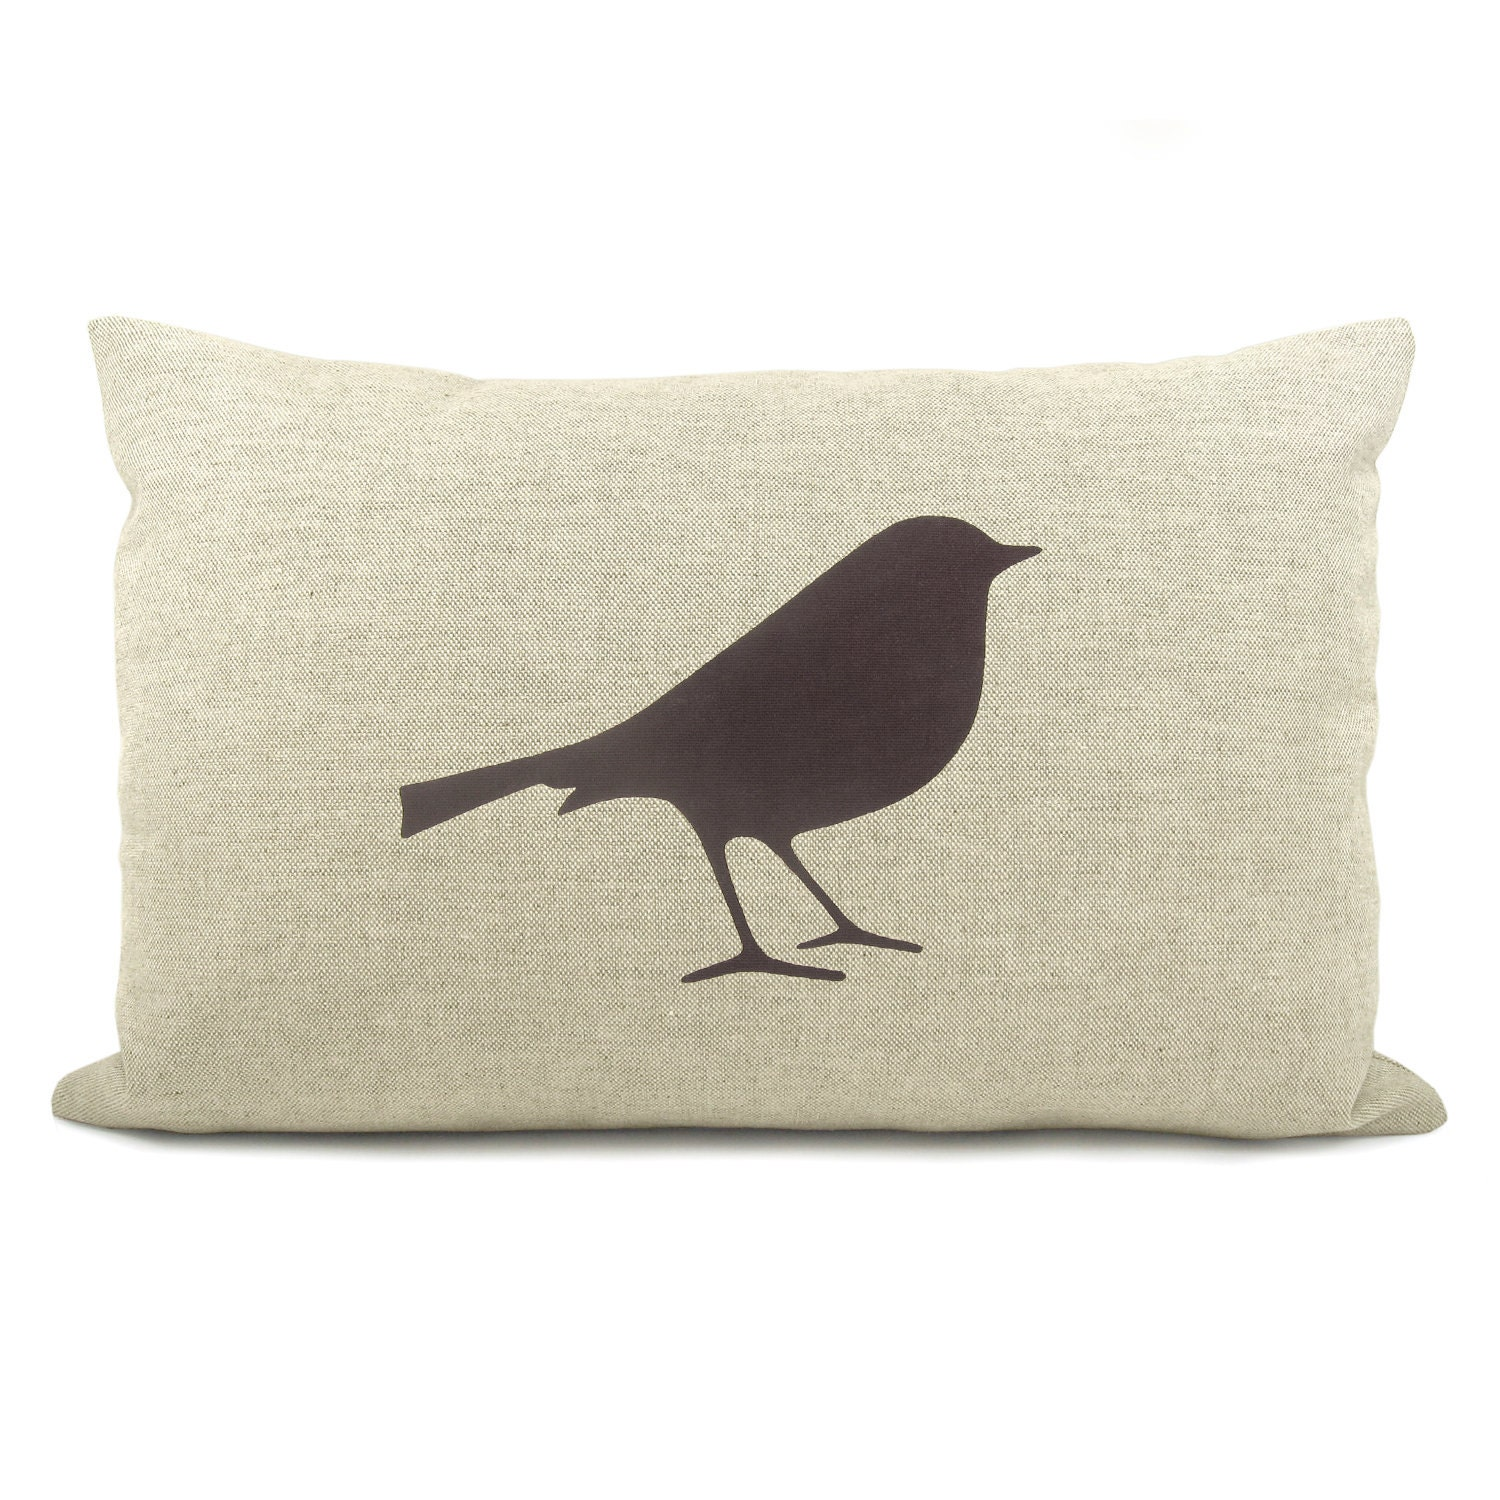 Decorative Pillows With Bird Design : Decorative Bird Pillow Case Cushion Cover in Dark by RocailStudio